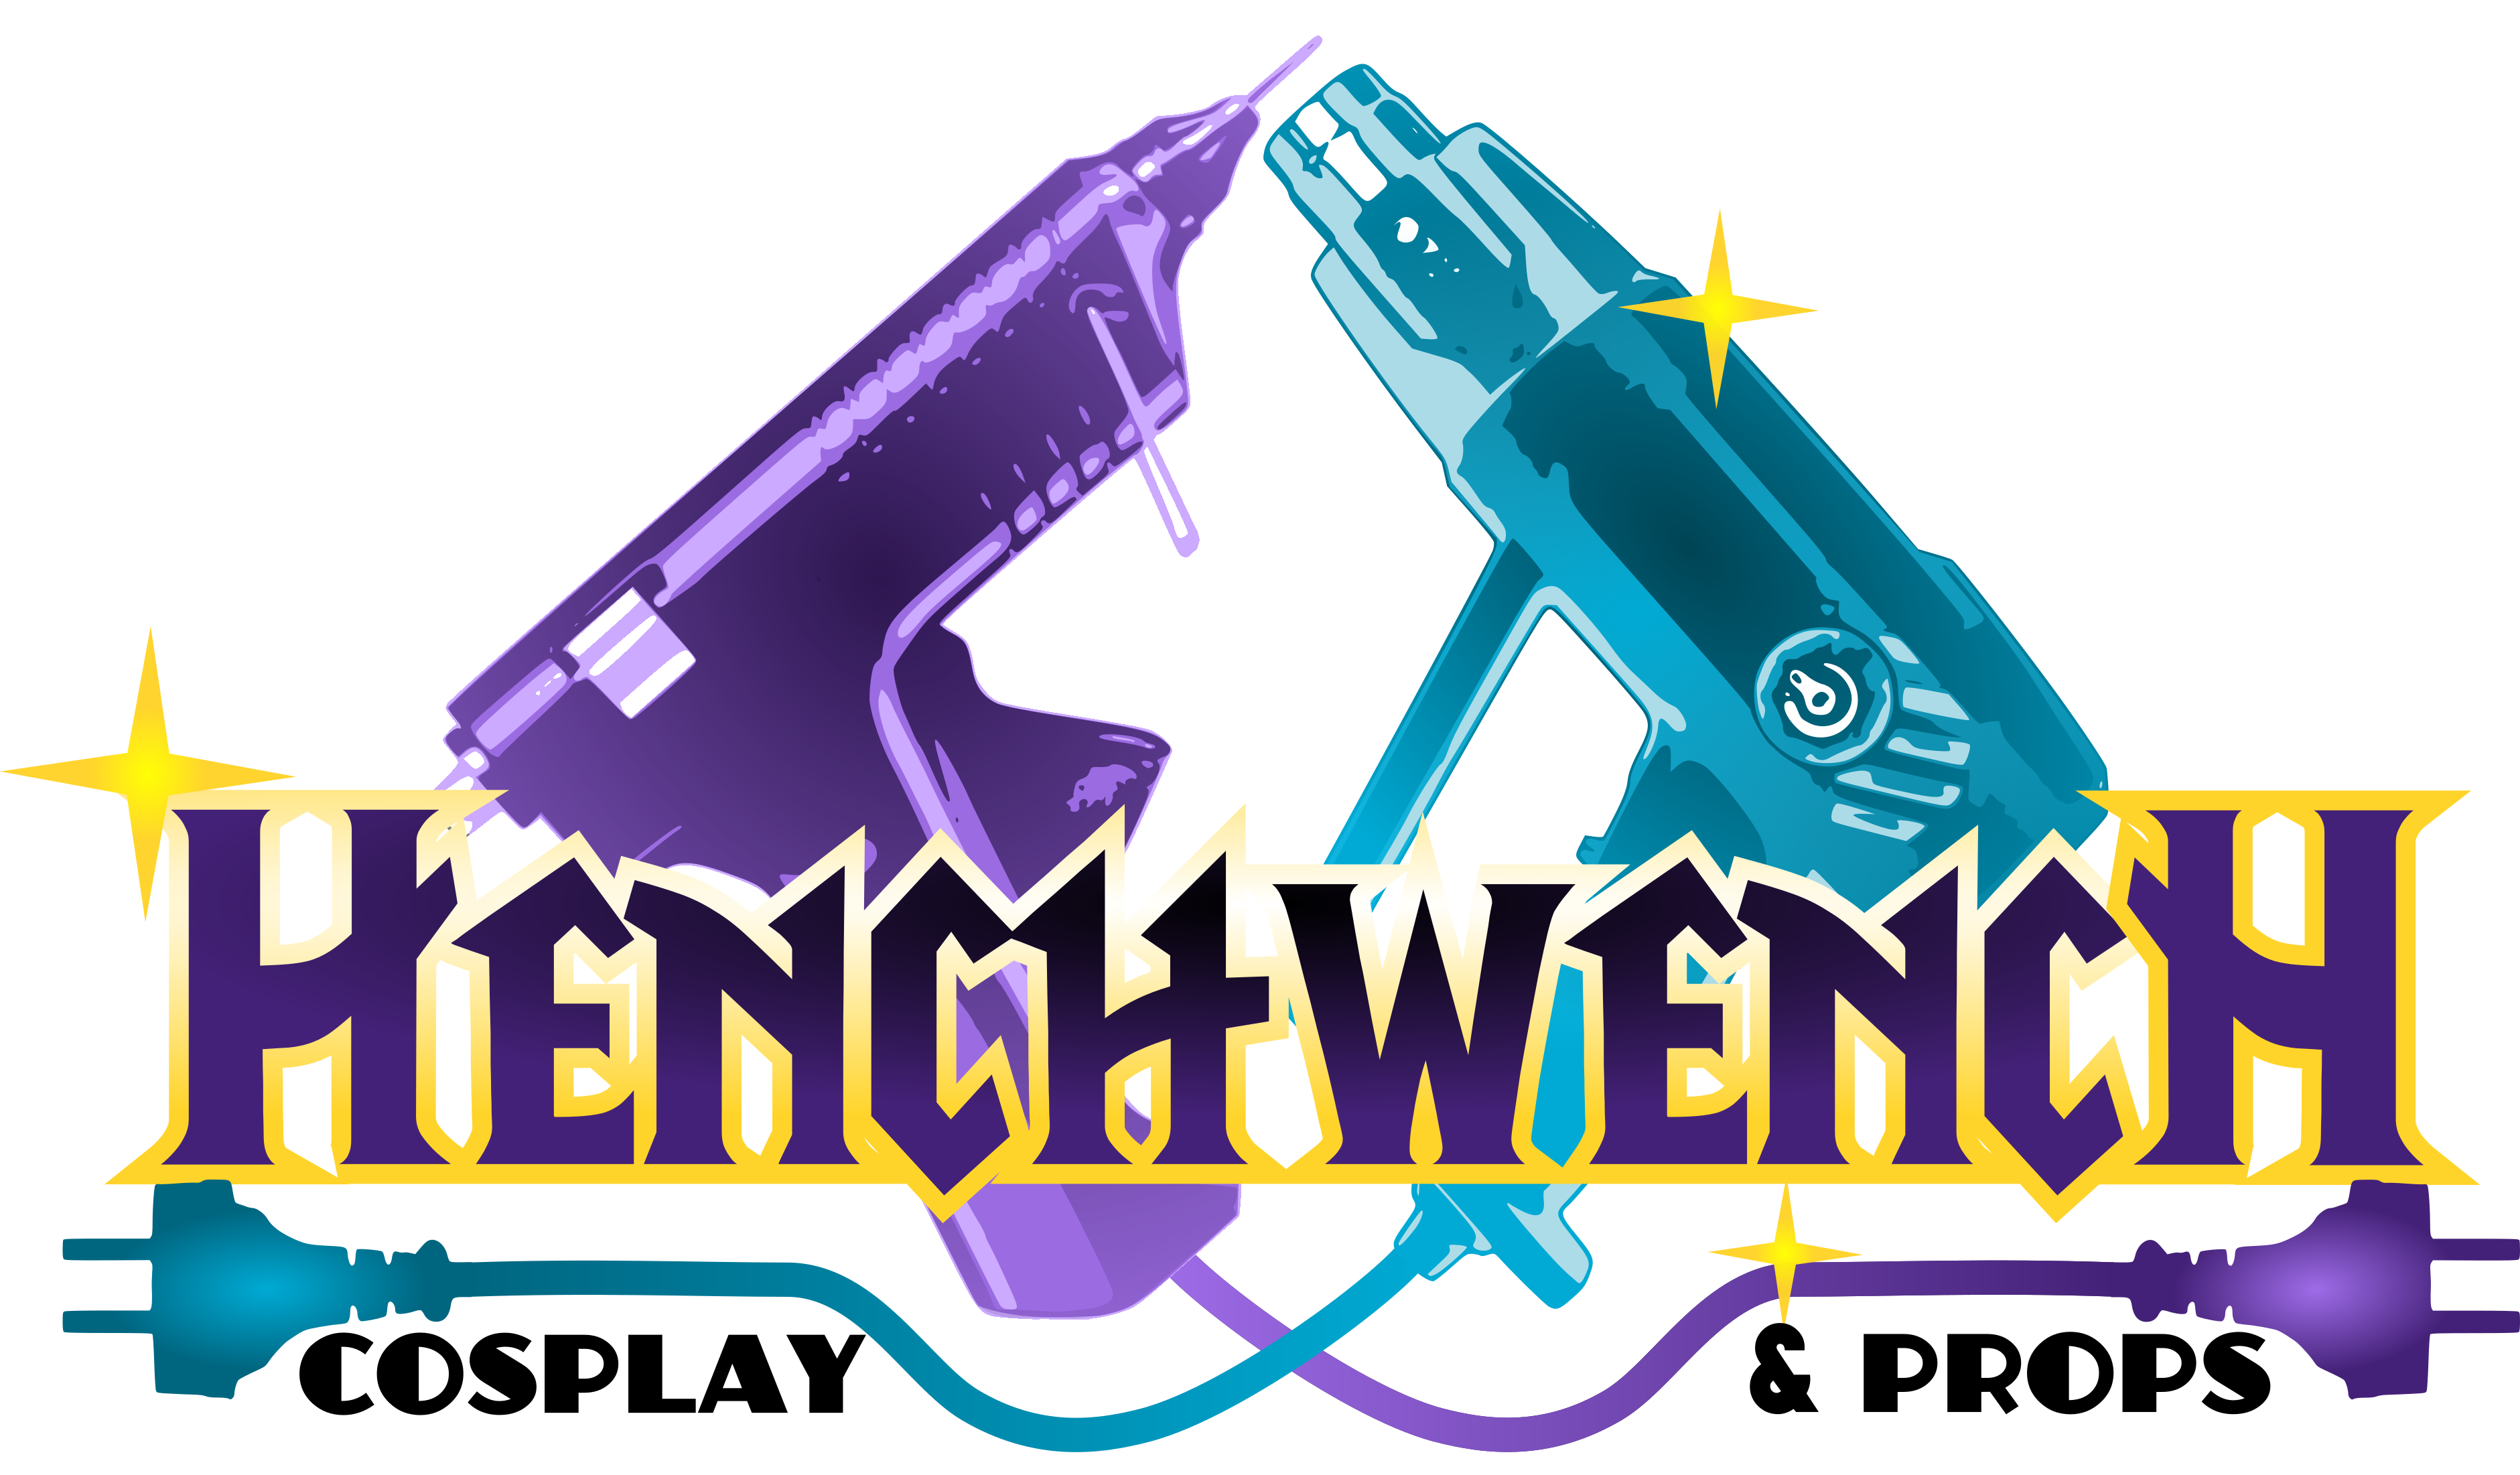 Henchwench Alternate Logo Sparkles lettering